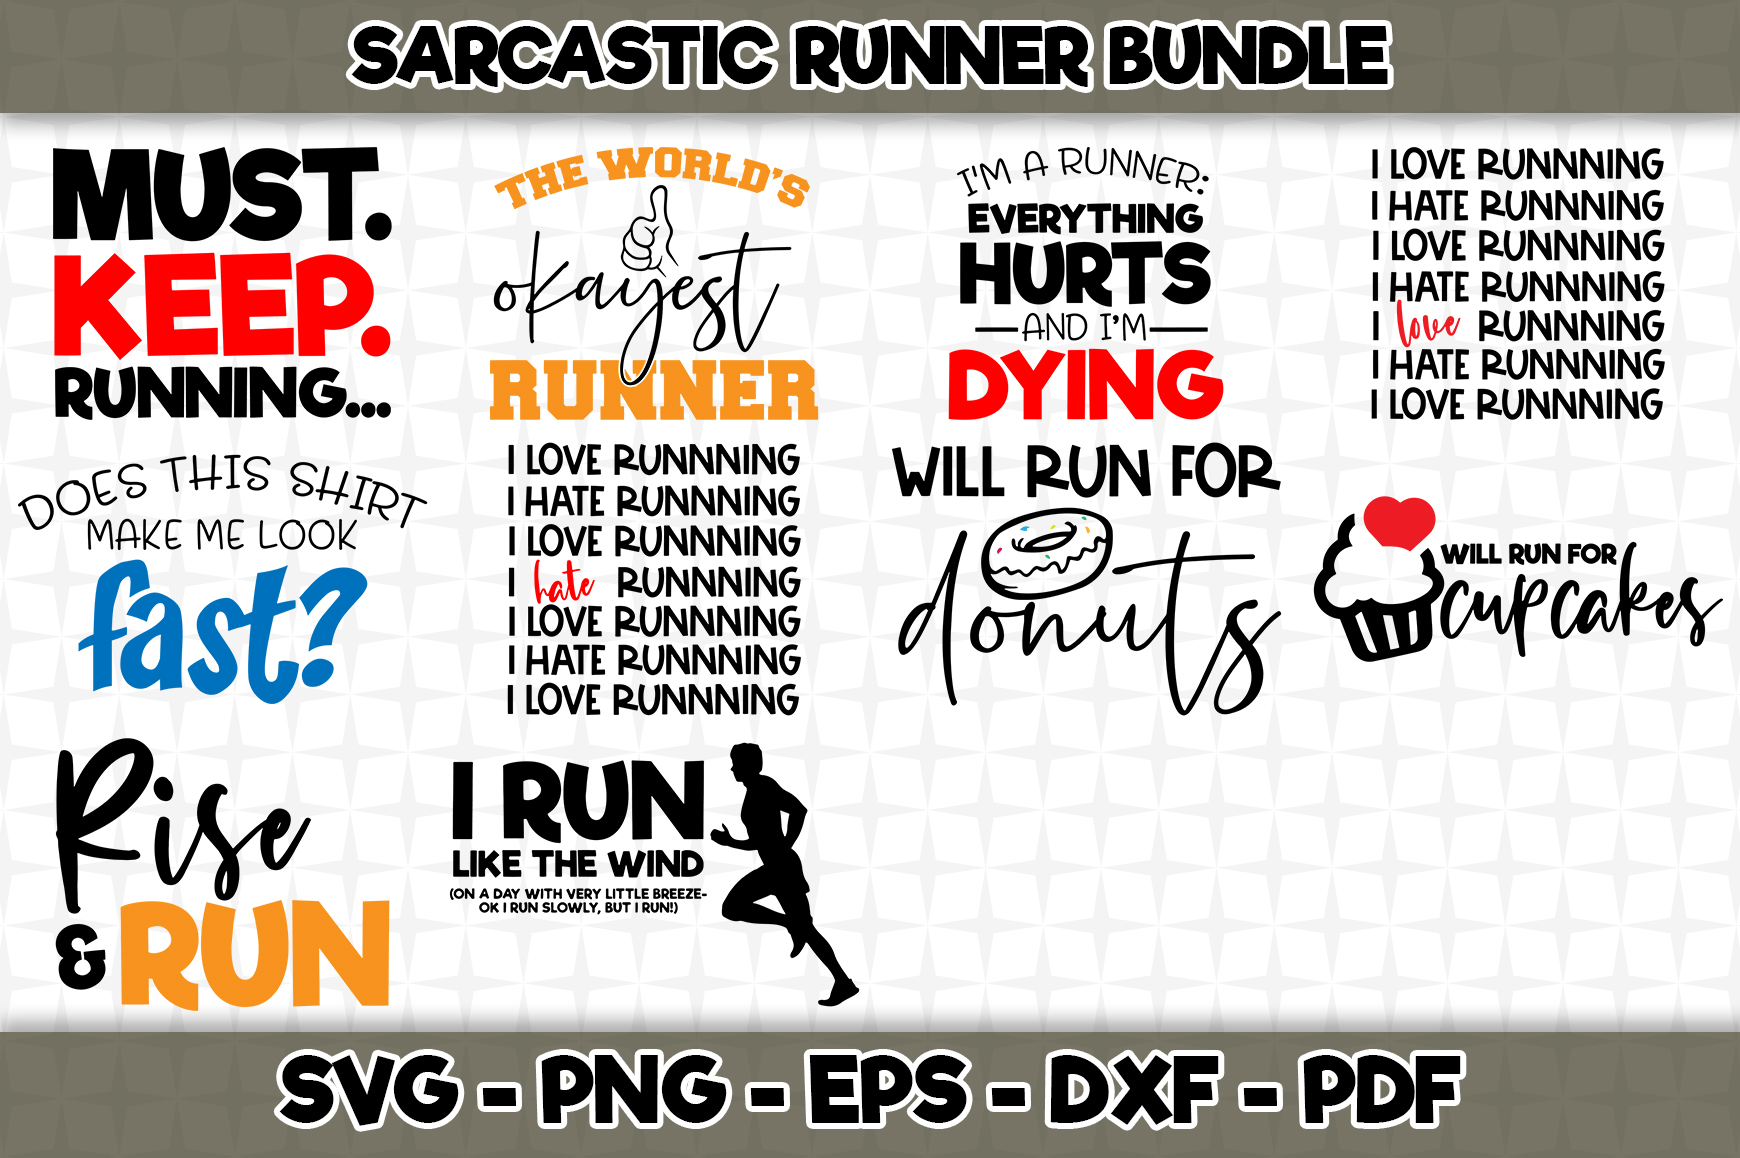 Download Free Sarcastic Runner Bundle Graphic By Svgexpress Creative Fabrica for Cricut Explore, Silhouette and other cutting machines.